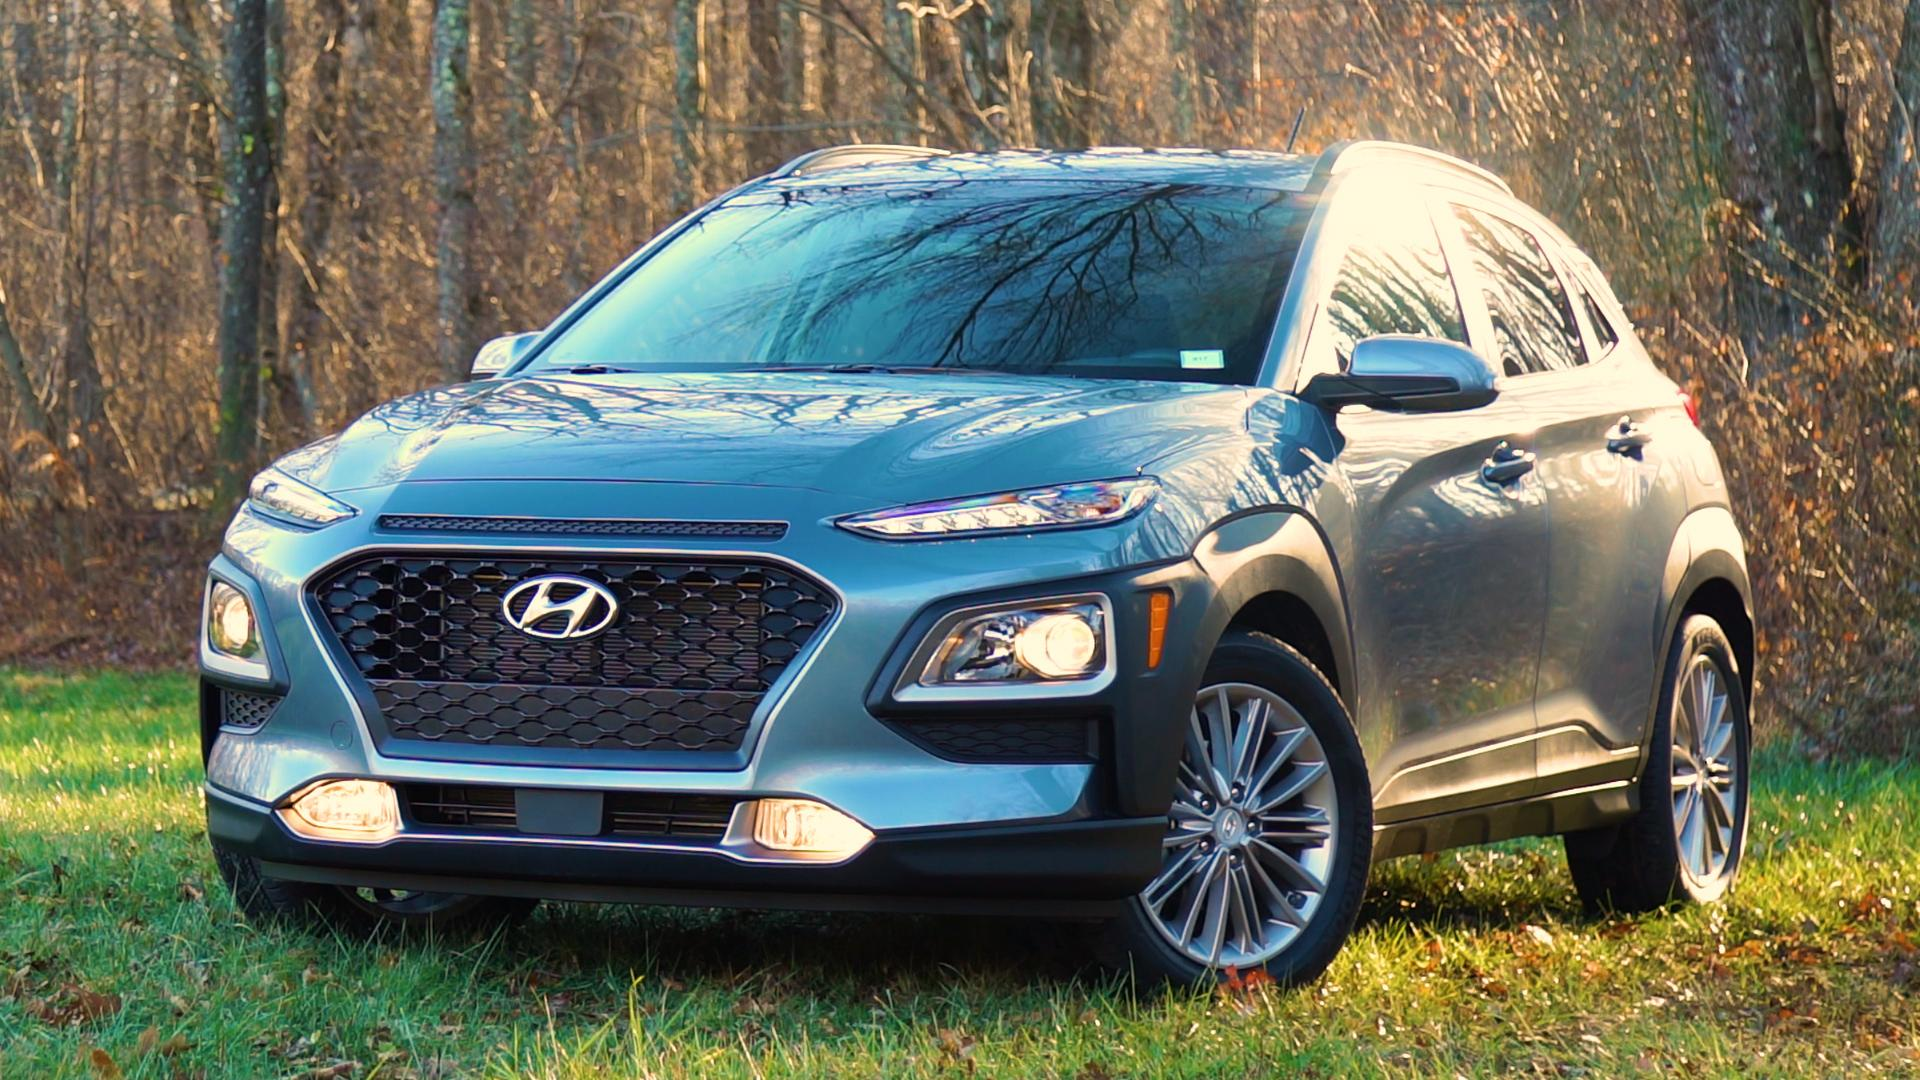 2018 hyundai kona first drive review consumer reports play video solutioingenieria Image collections